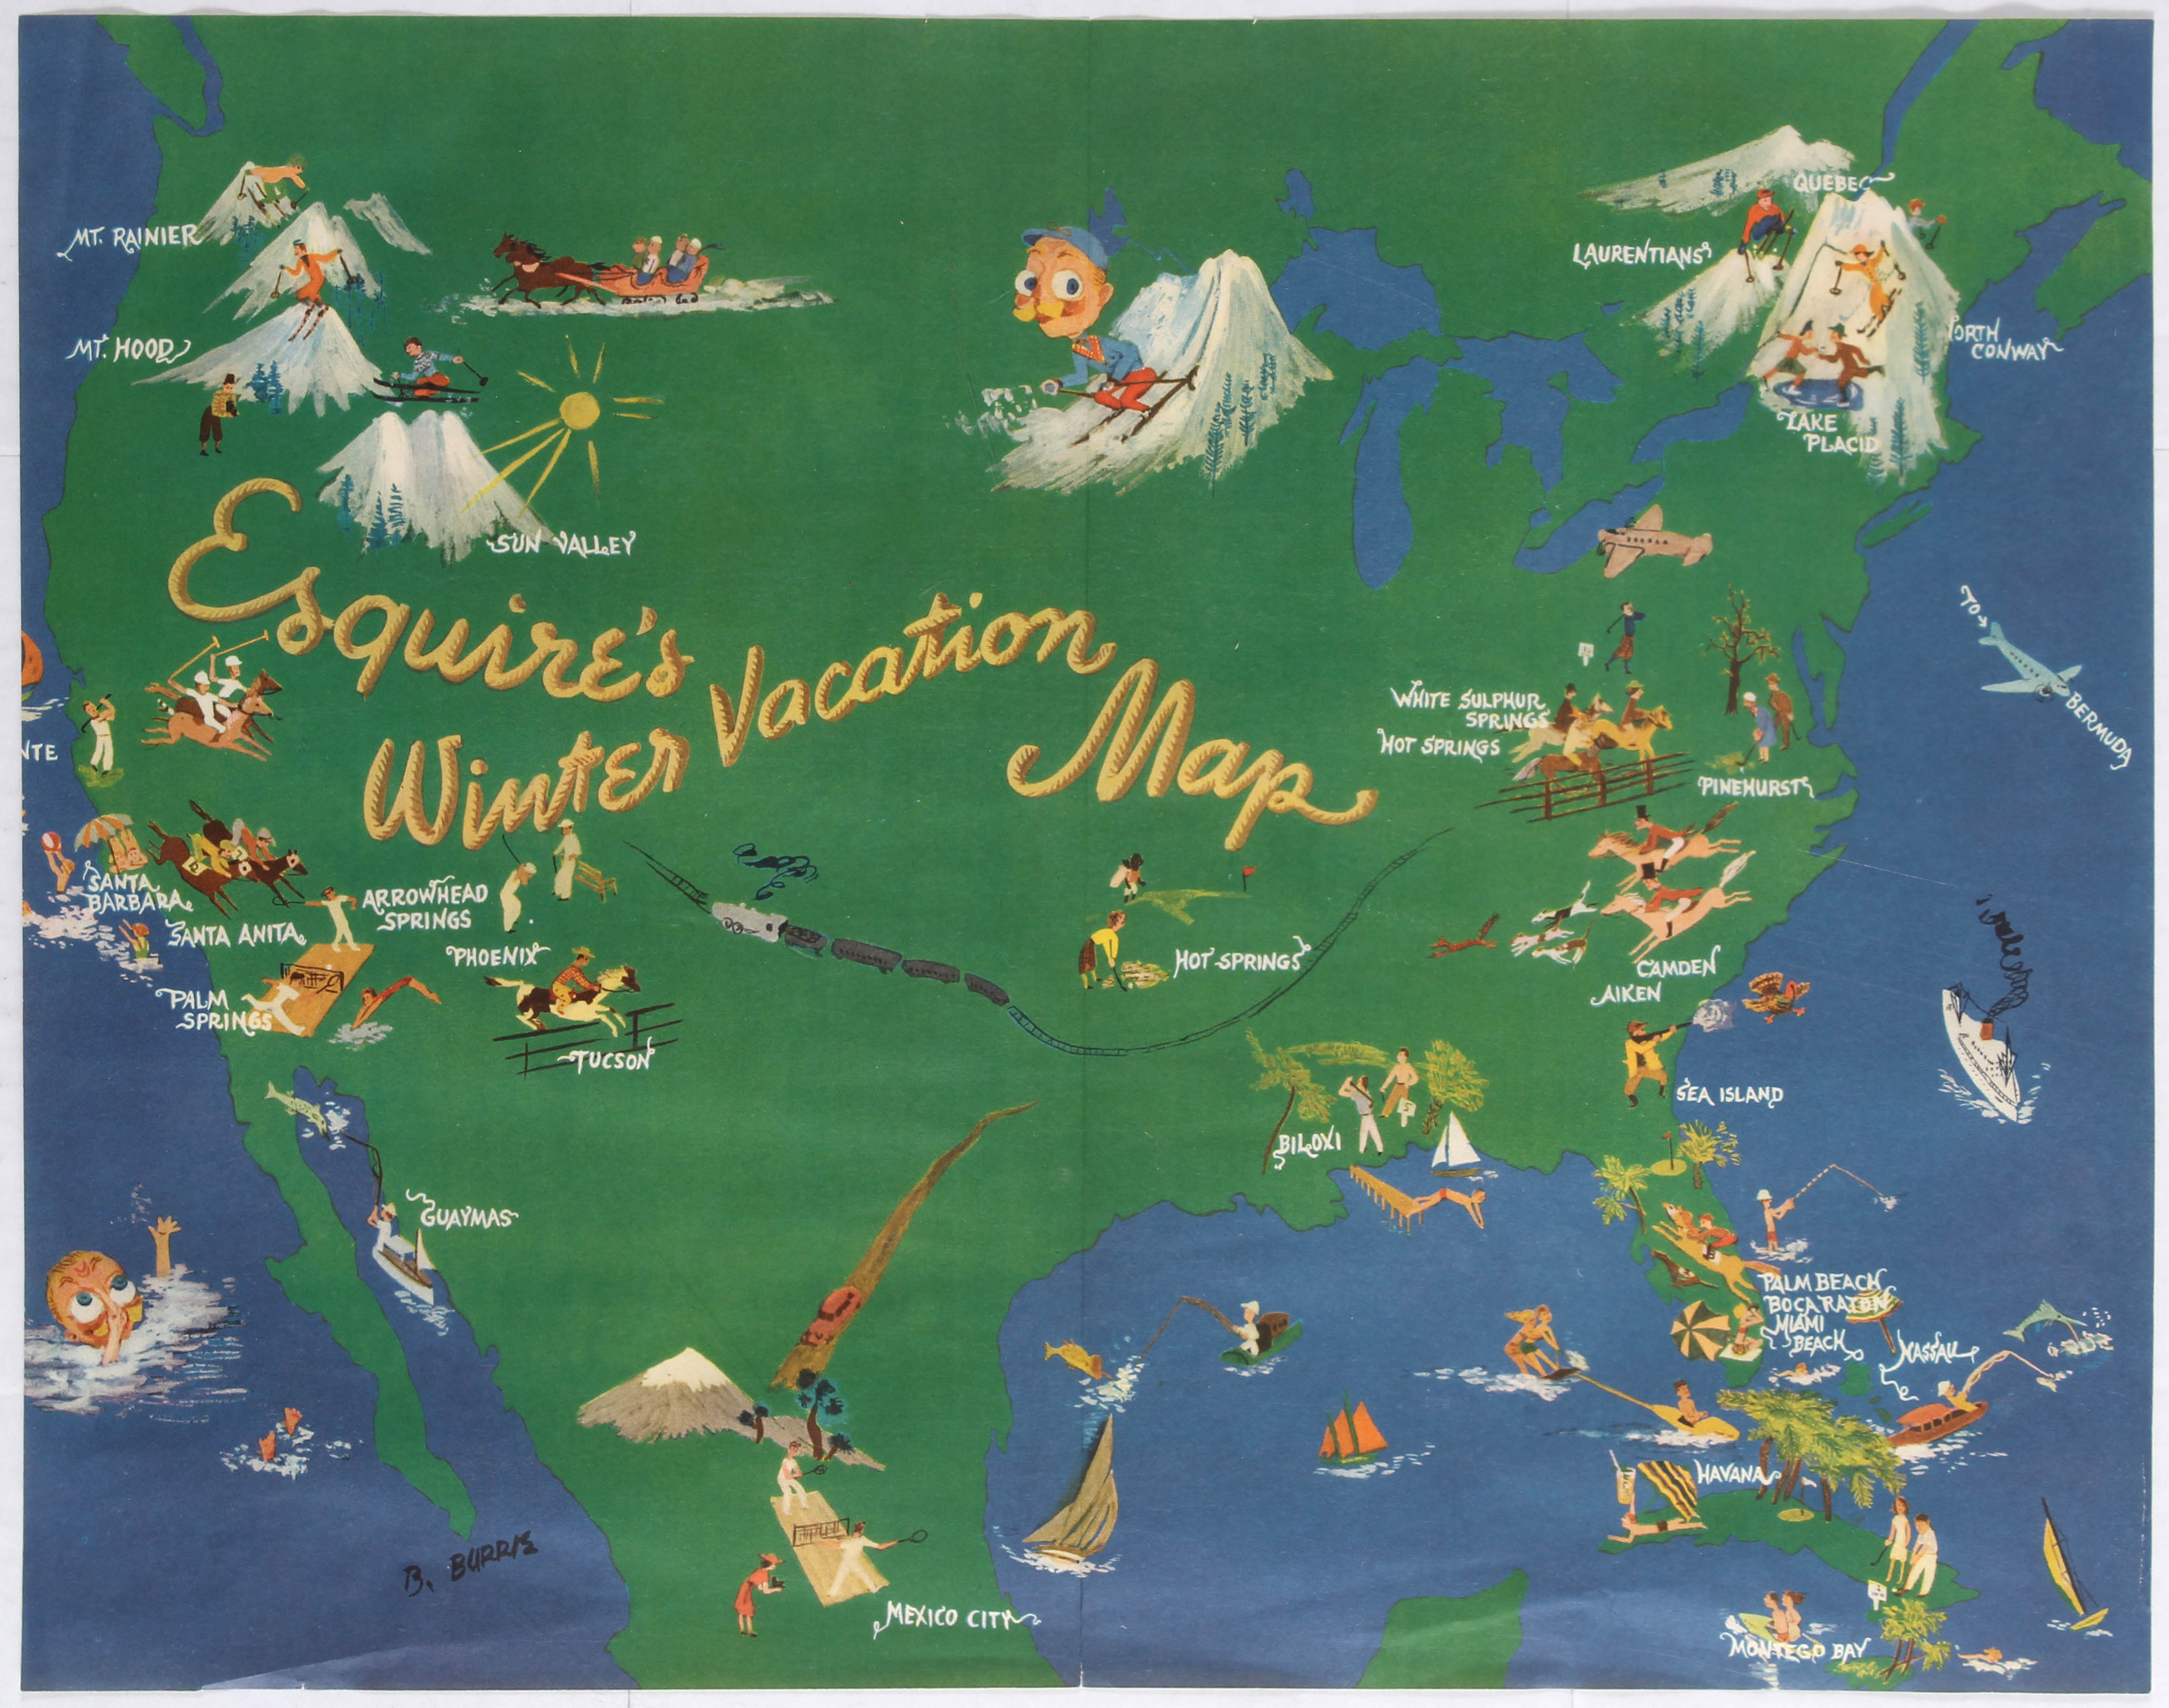 Advertising Poster Esquire Winter Vacation Map / Pin Up Poster Petty - Image 2 of 2